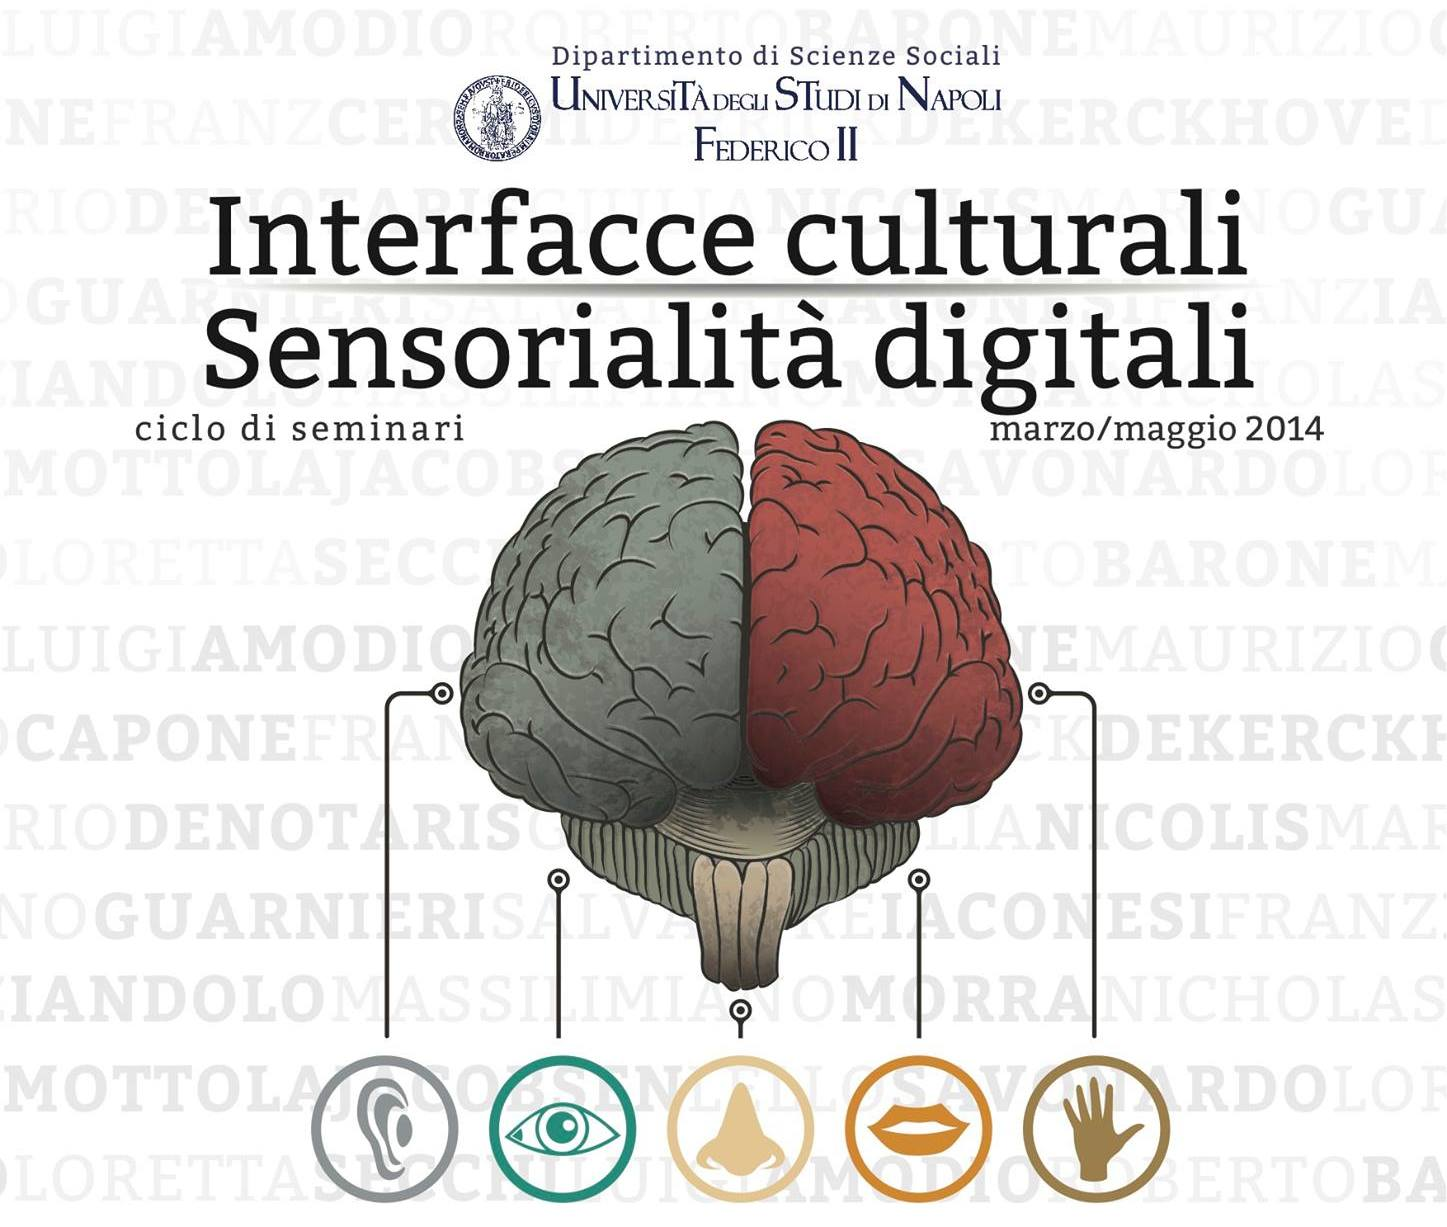 Cultural Interfaces in Naples